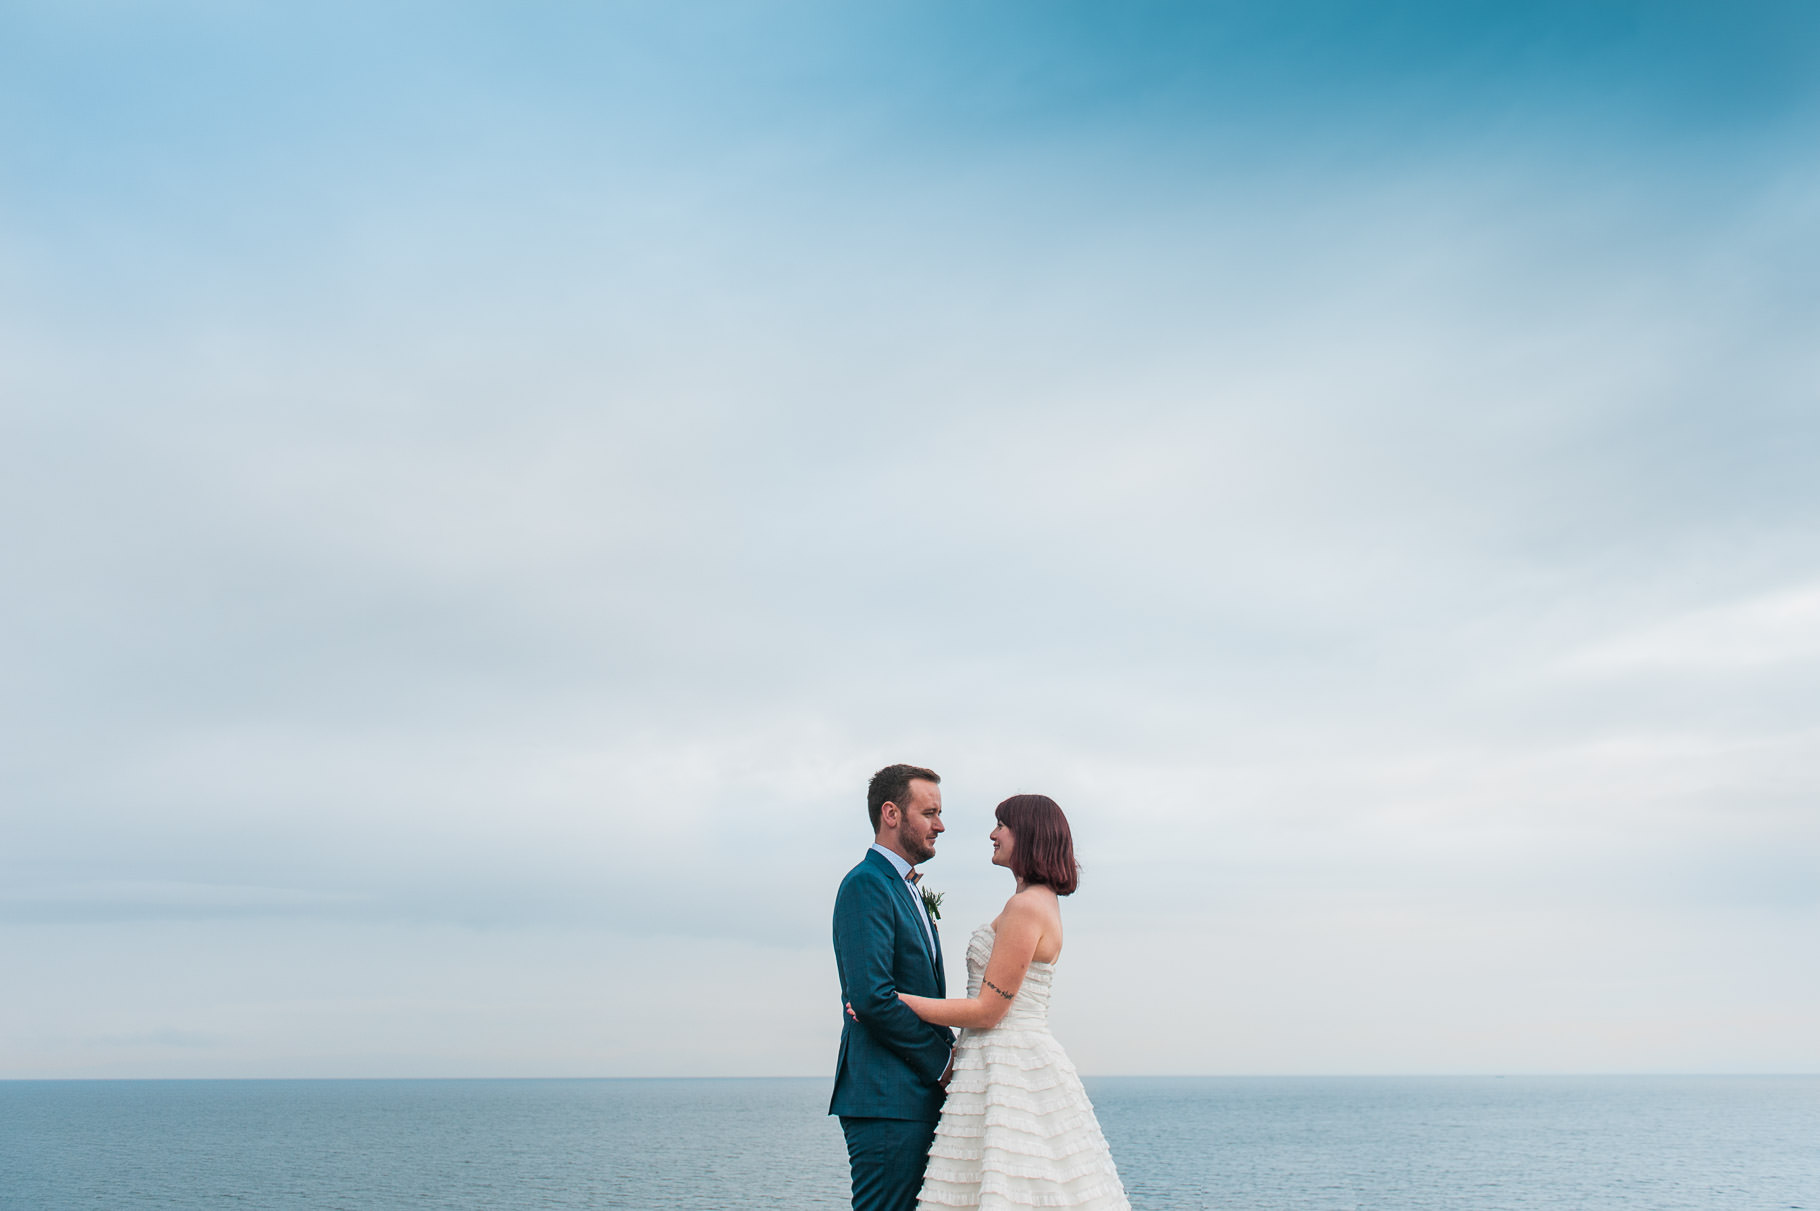 elopement by the sea-bride and groom portrait-bride and groom by the ocean